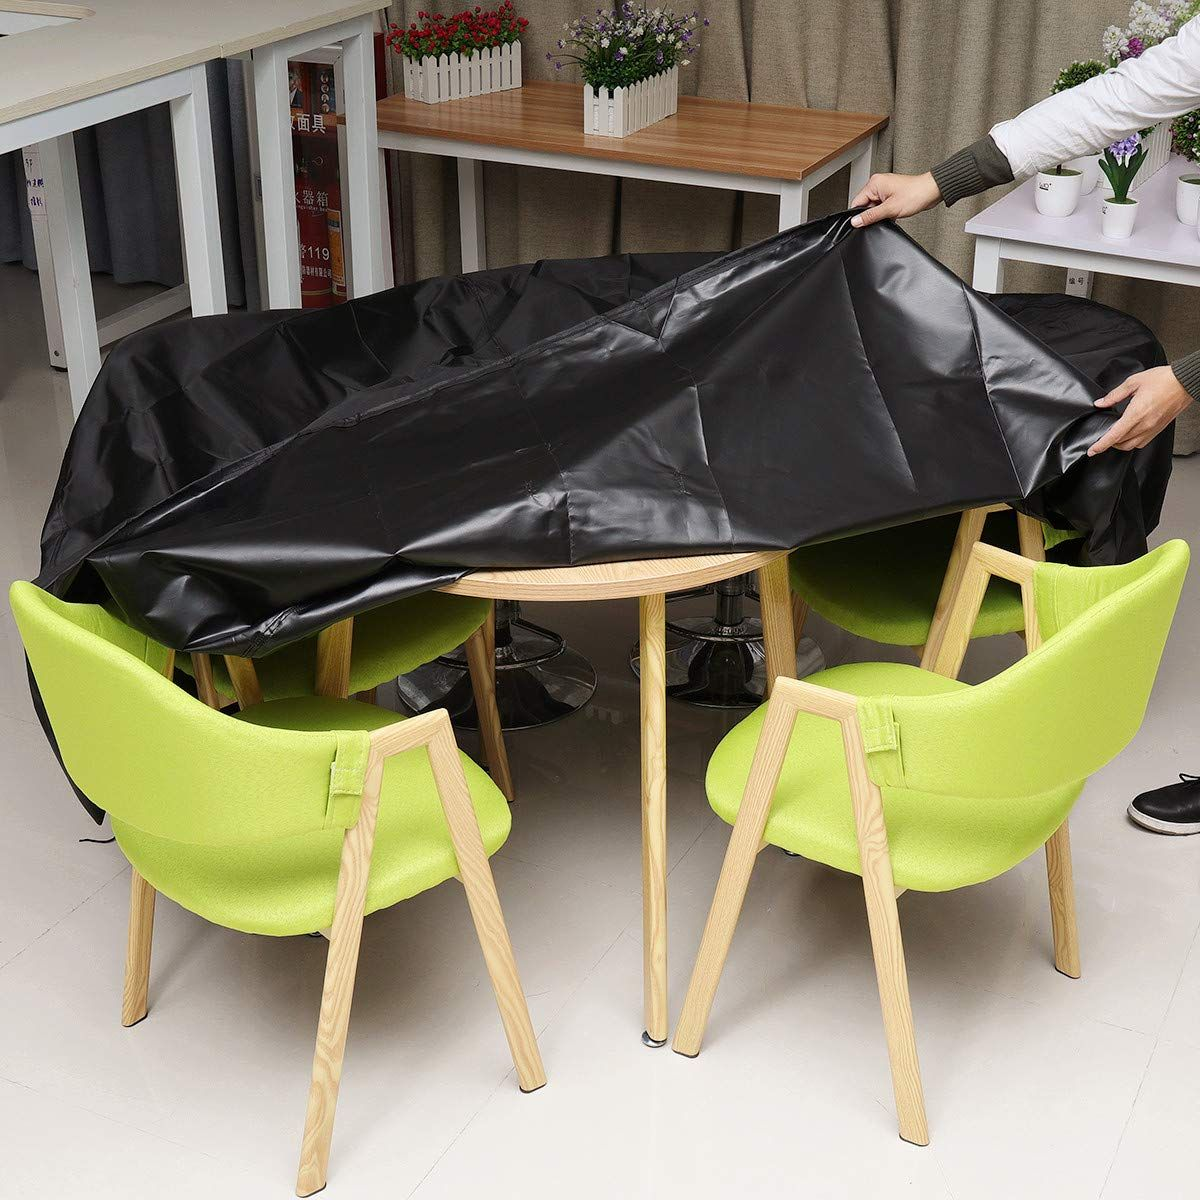 Amazon Com Patio Cover Essort Large Capacity Outdoor Sectional Furniture Cover Table And Chai Furniture Large Outdoor Furniture Outdoor Sectional Furniture